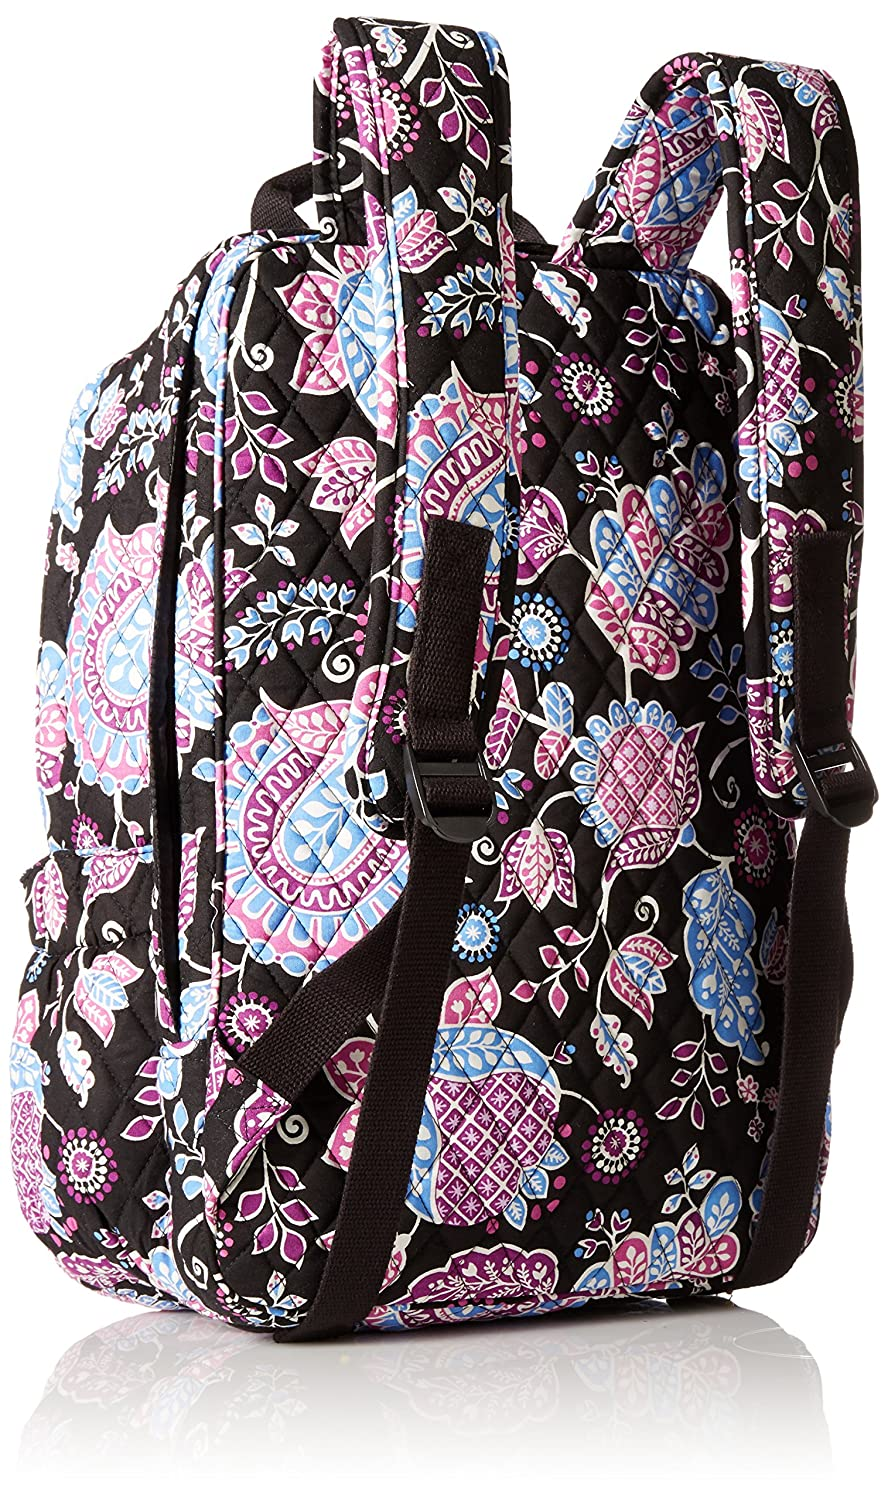 Best Deals On Vera Bradley Backpacks- Fenix Toulouse Handball e6258c64659f7